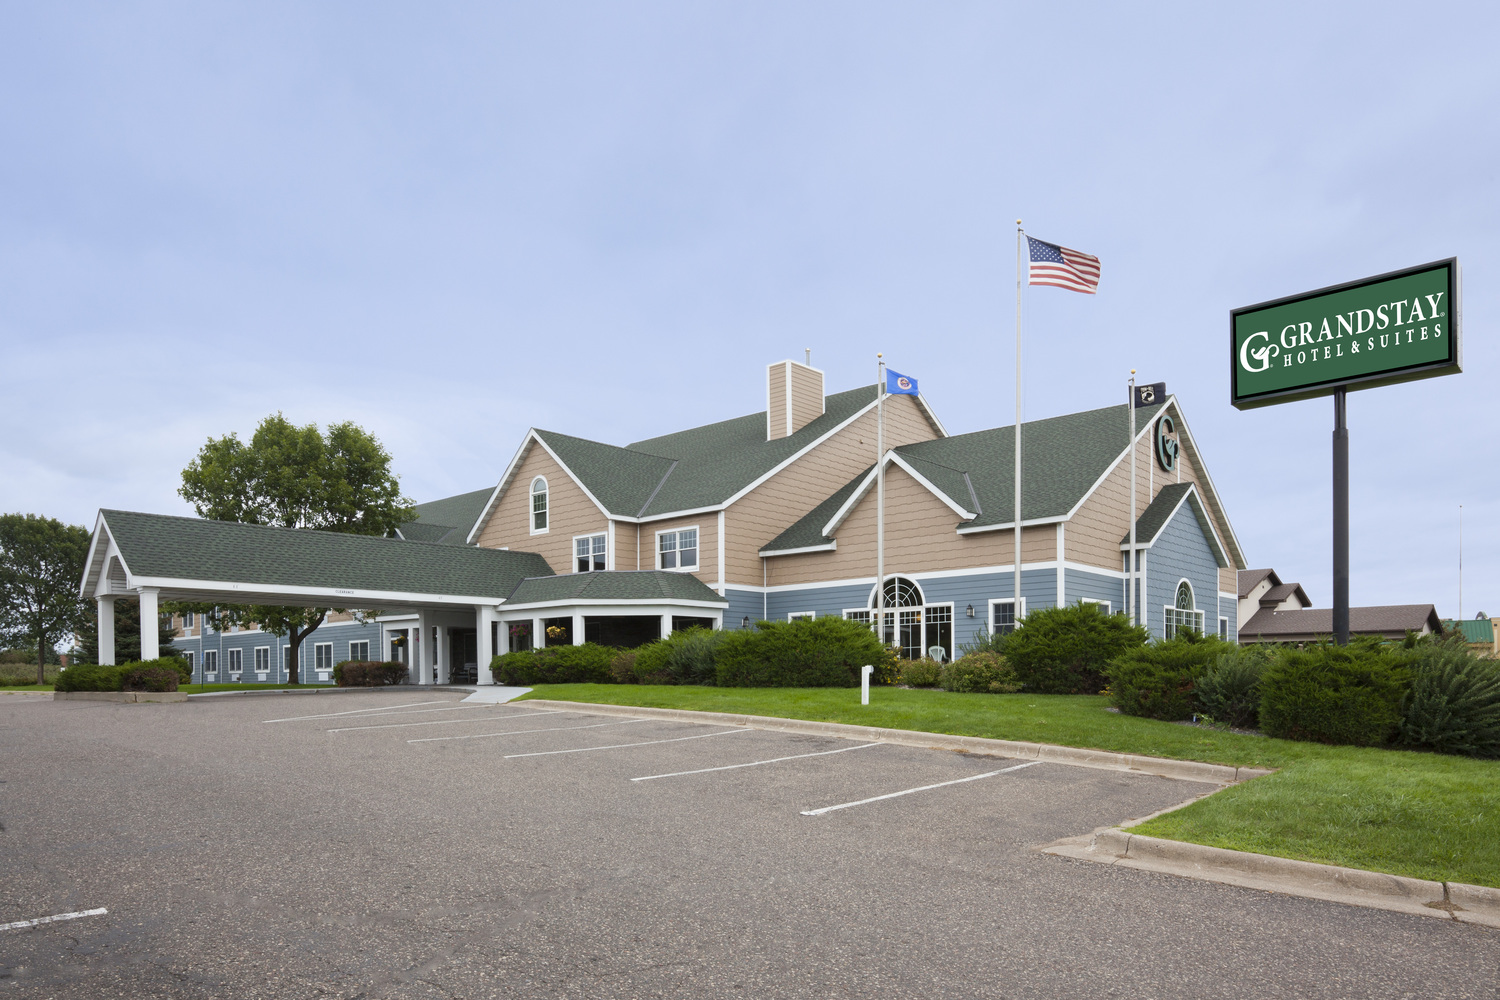 GrandStay Hotel and Suites - Stillwater, MN